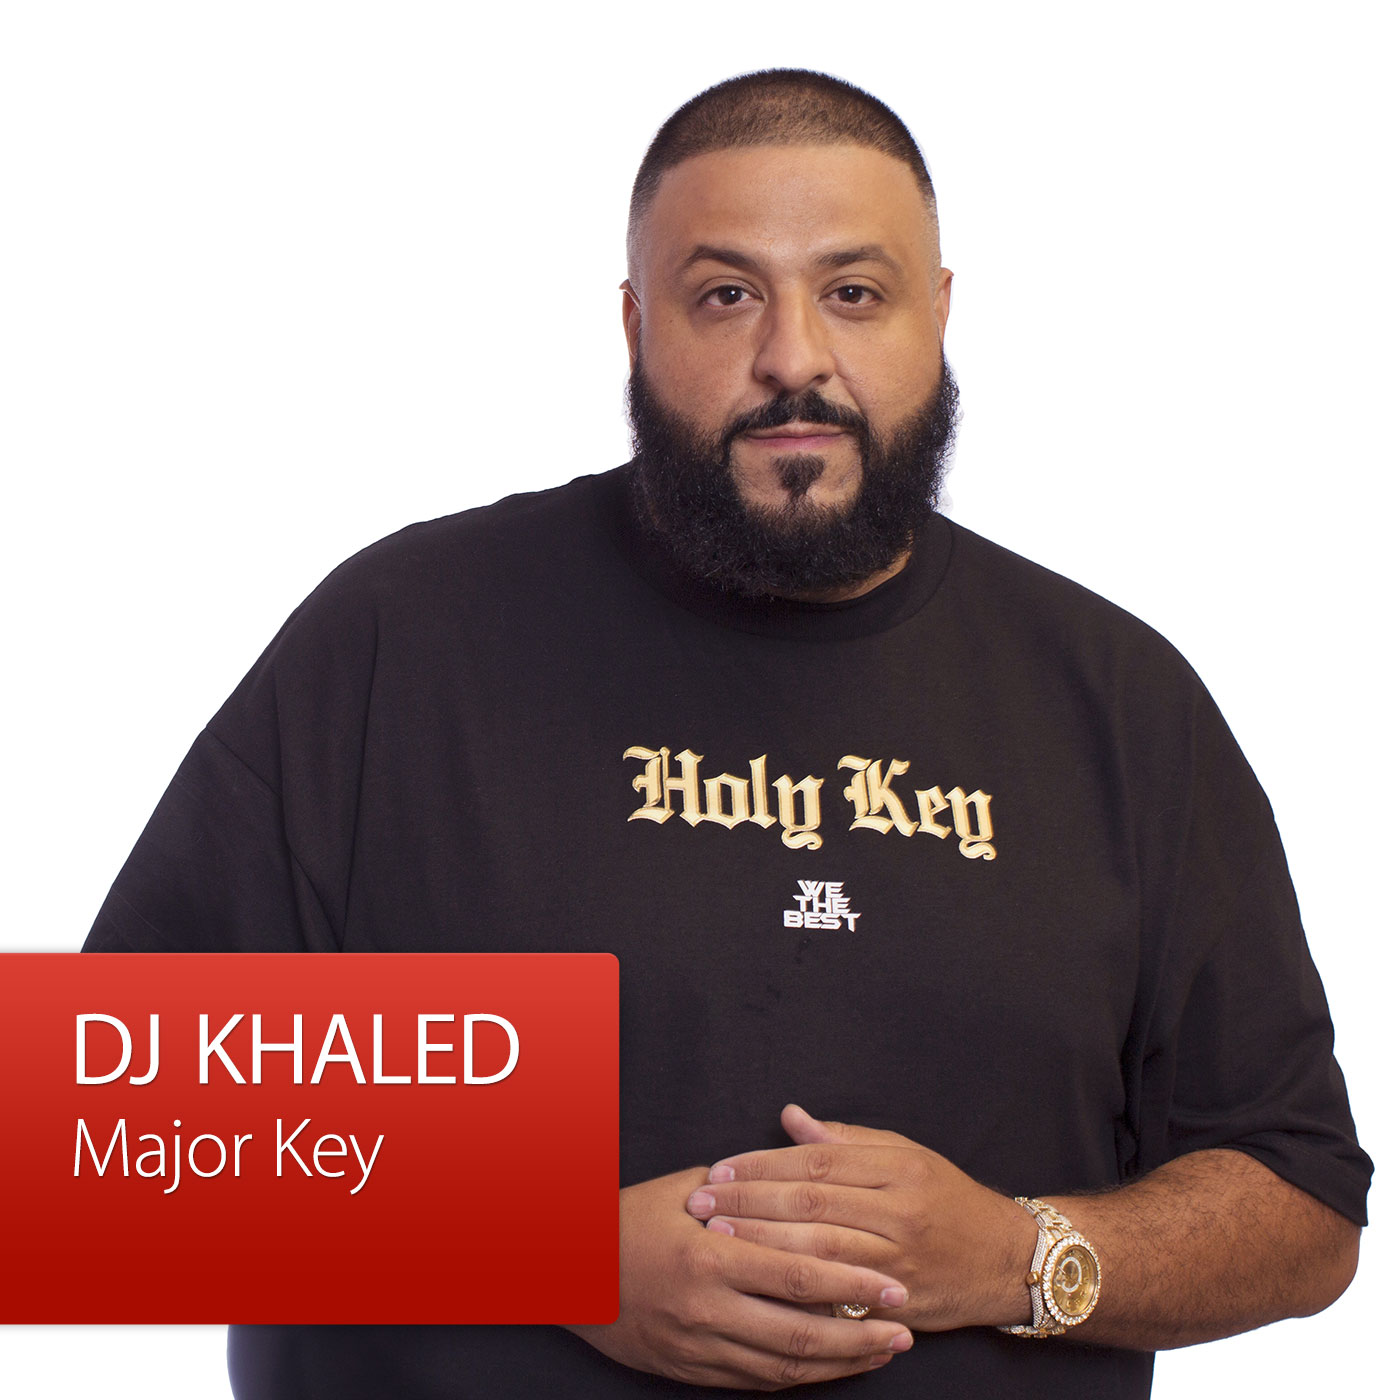 Dj khaled meet the musician by events at the apple store on apple dj khaled meet the musician by events at the apple store on apple podcasts m4hsunfo